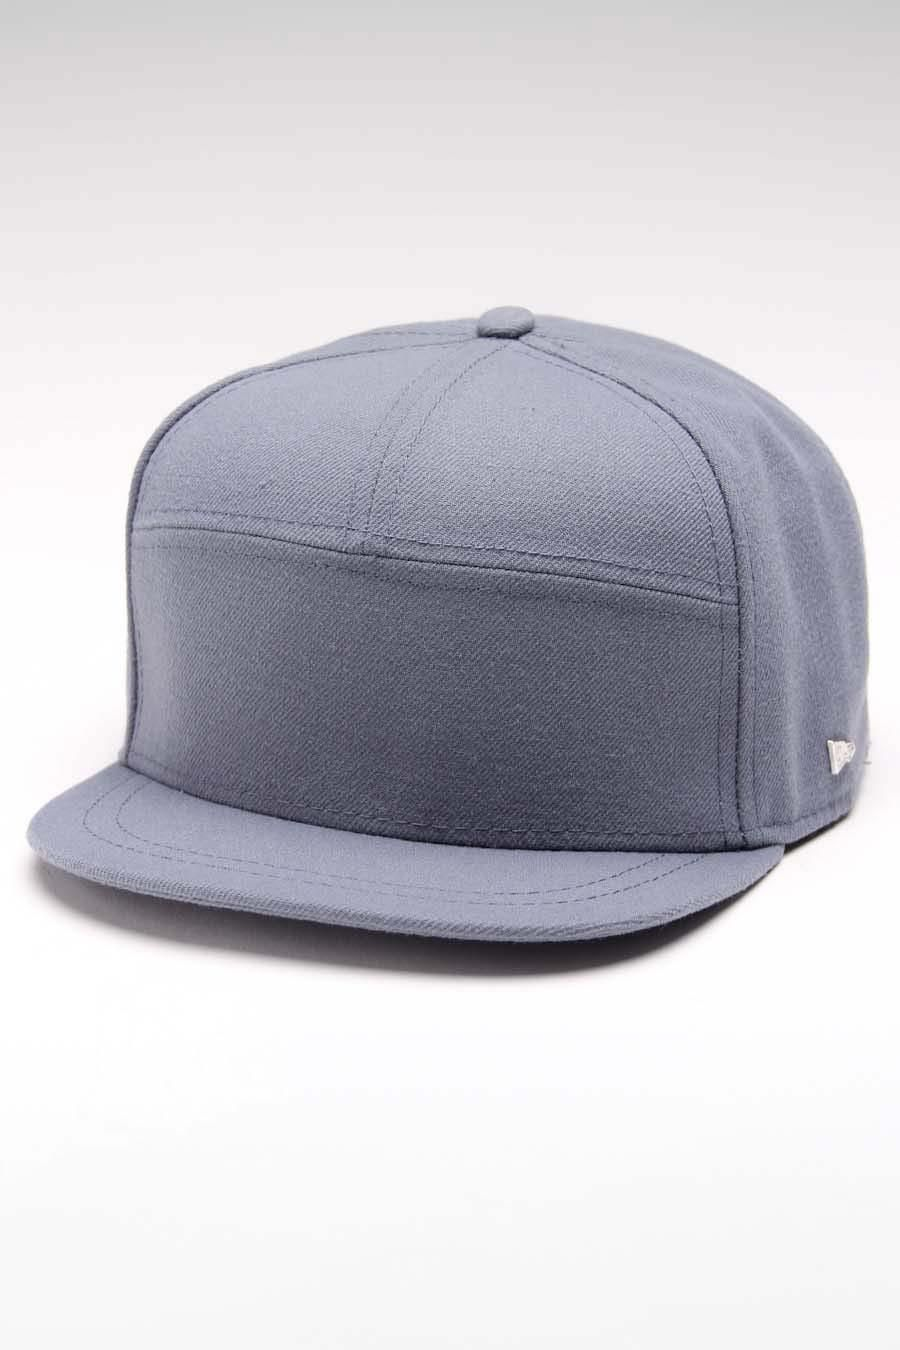 6221e42a02c New Era Ek Prime Blue Stone